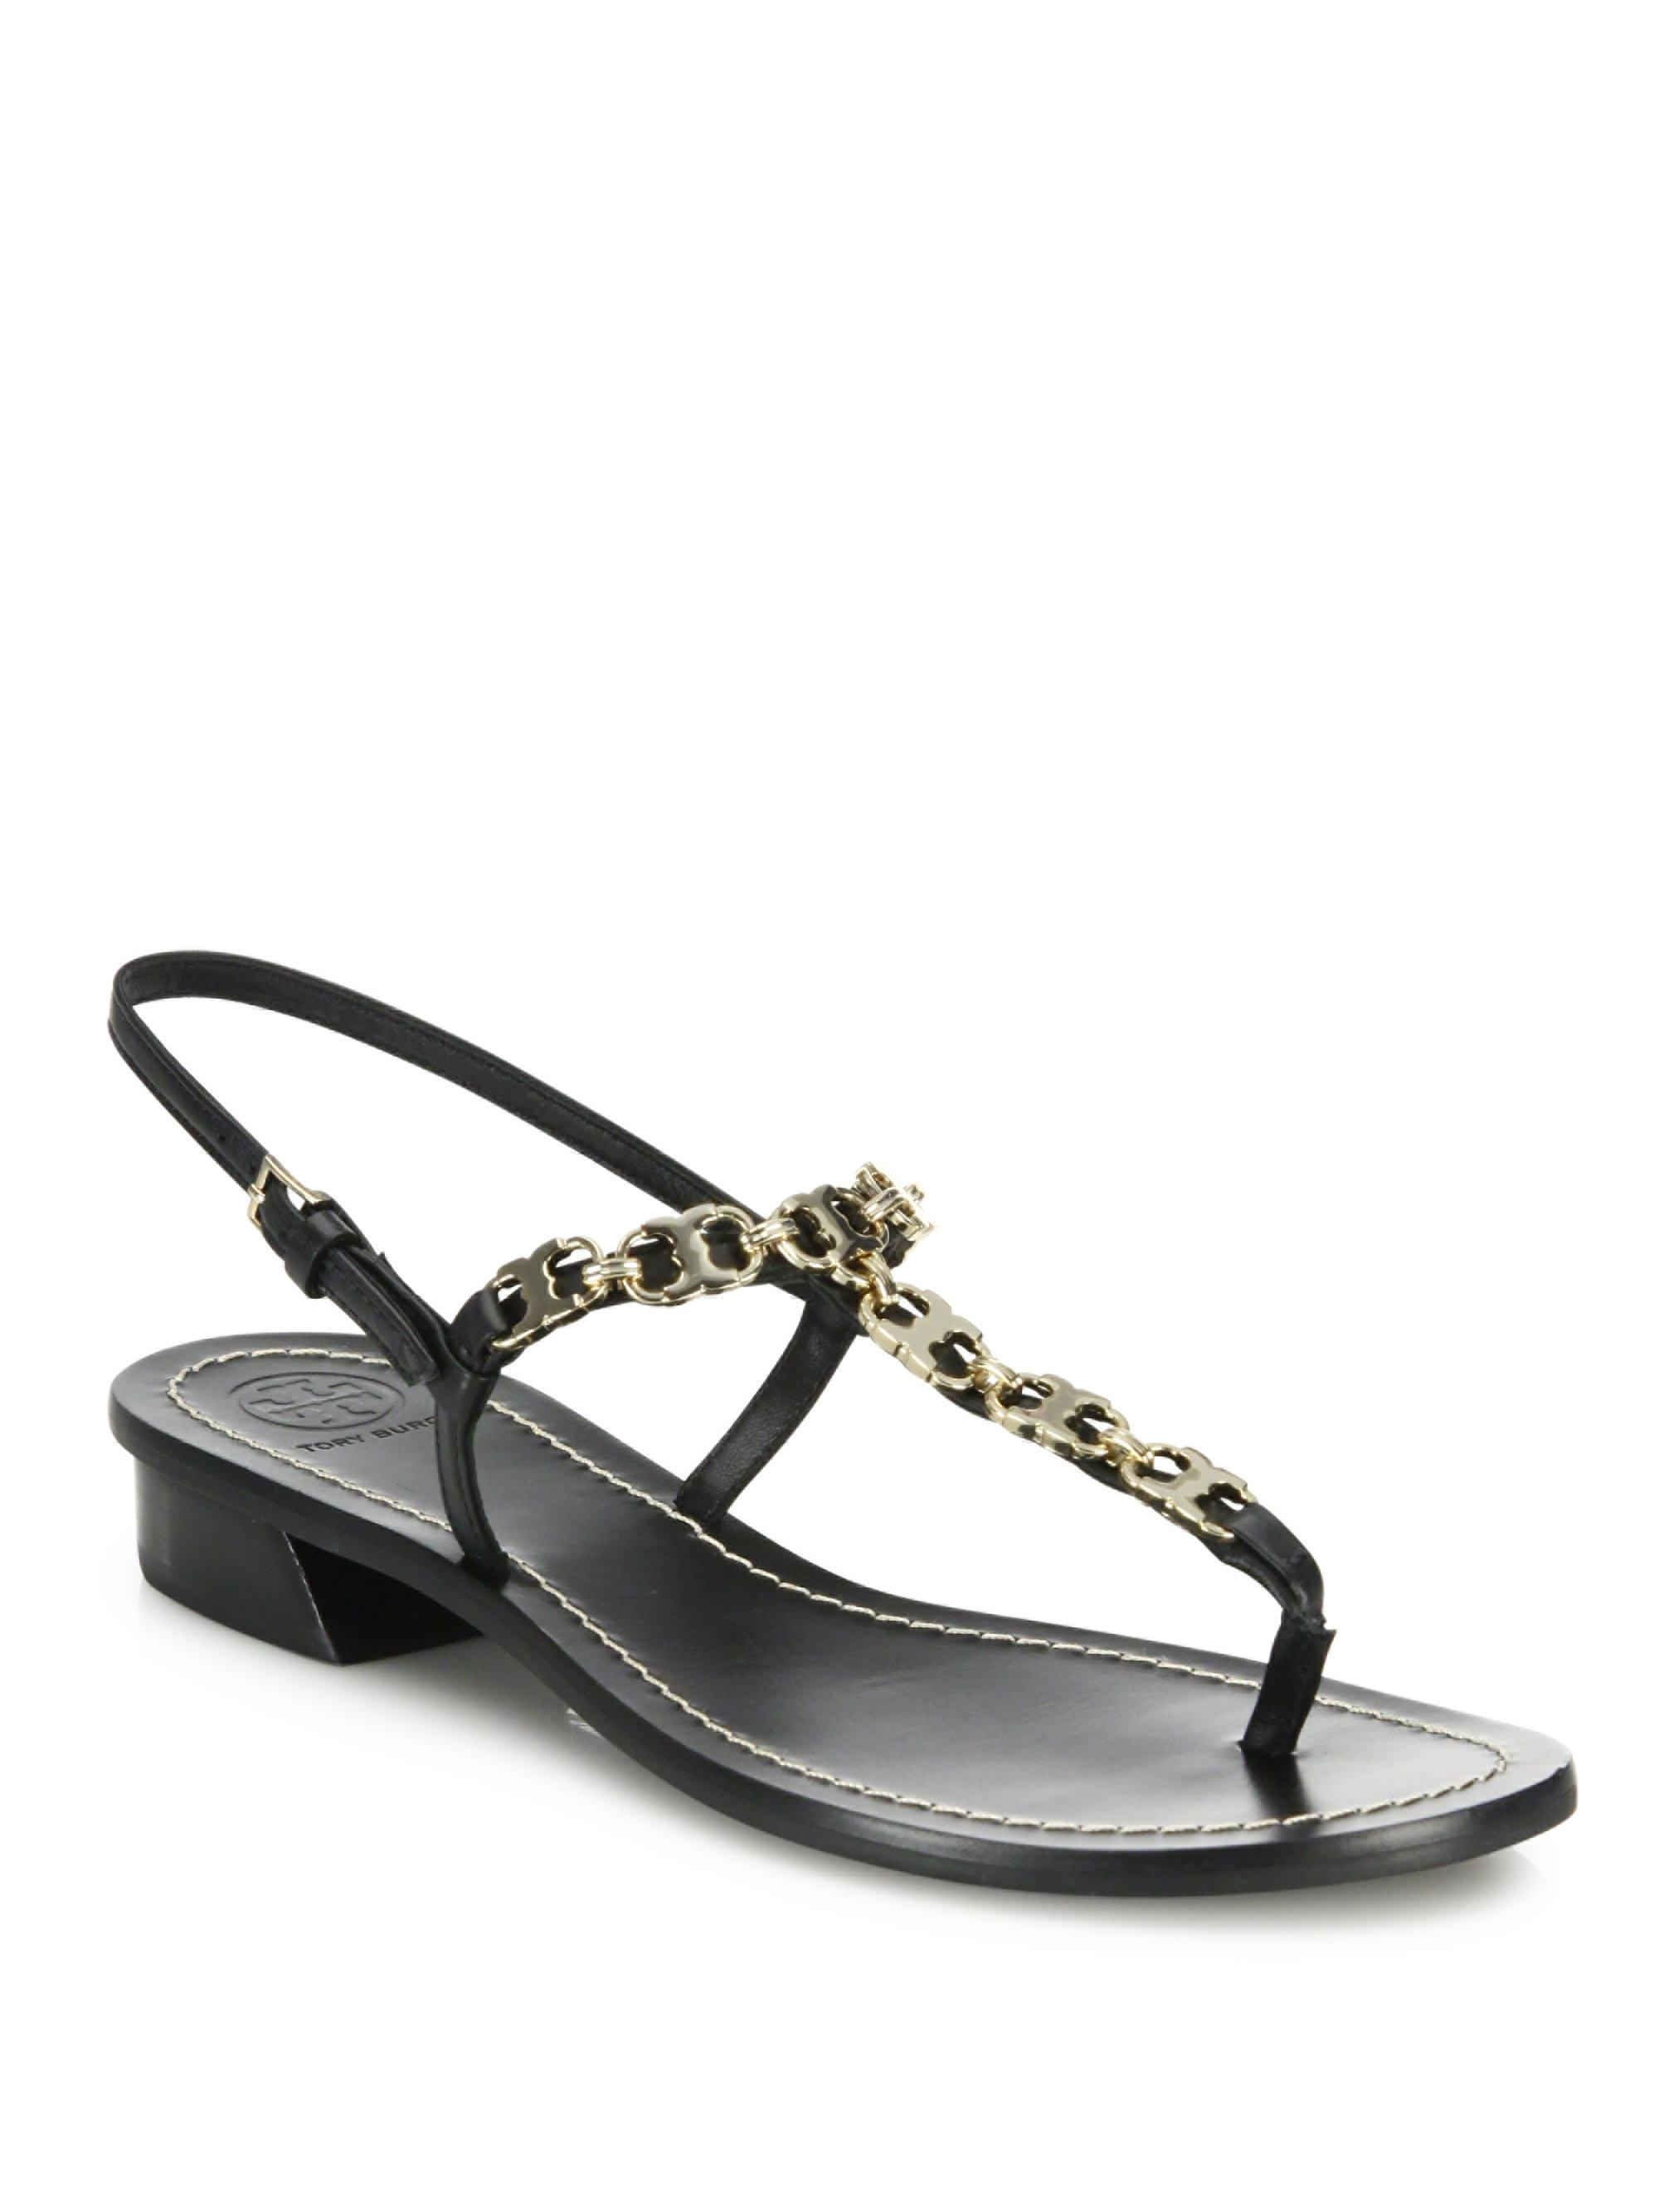 a885b5e9ef0c Lyst - Tory Burch Gemini Link Embellished T-strap Sandals in Black